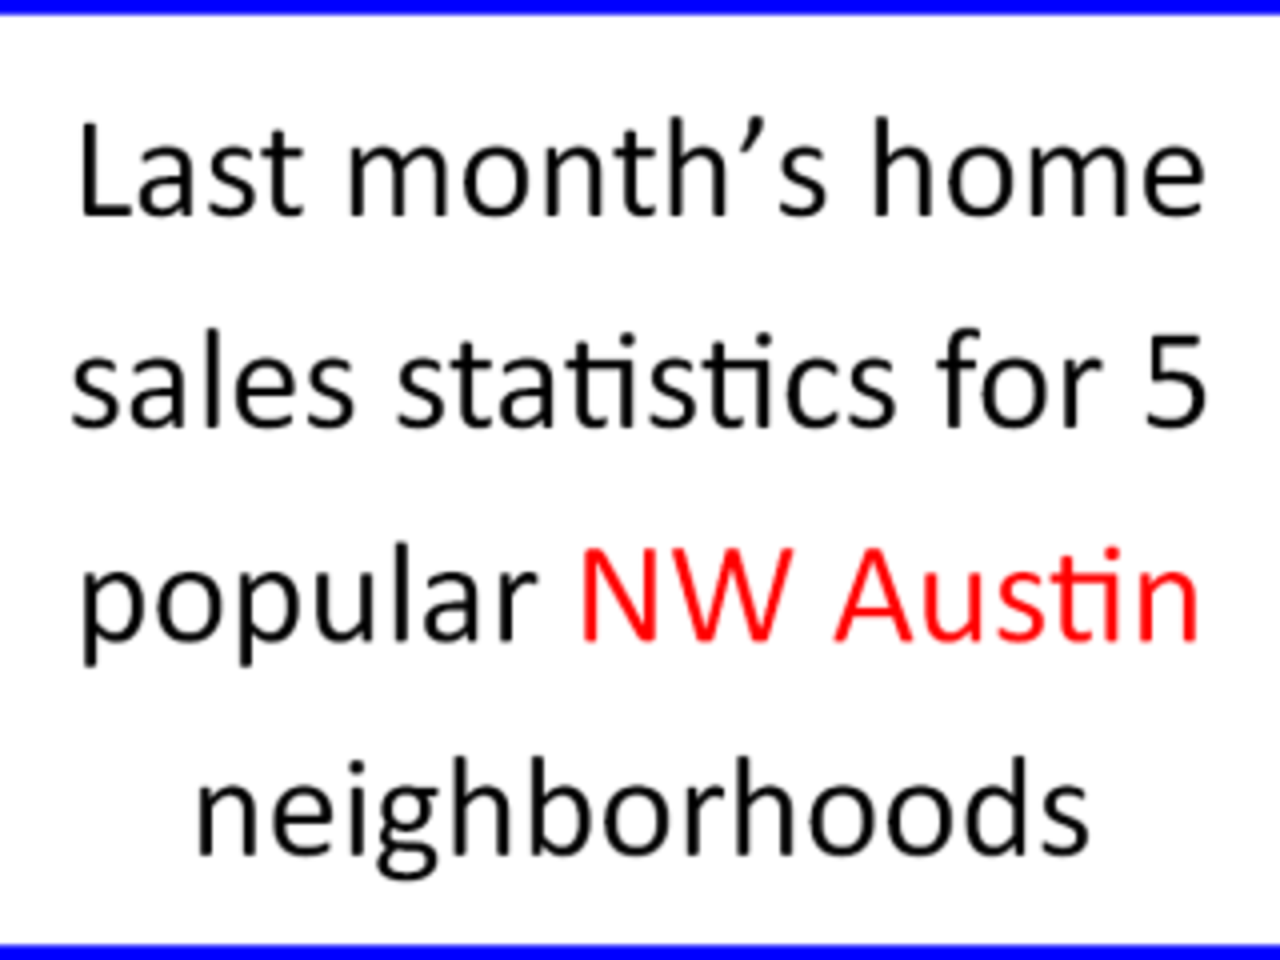 December home sales statistics for 5 popular NW Austin neighborhoods